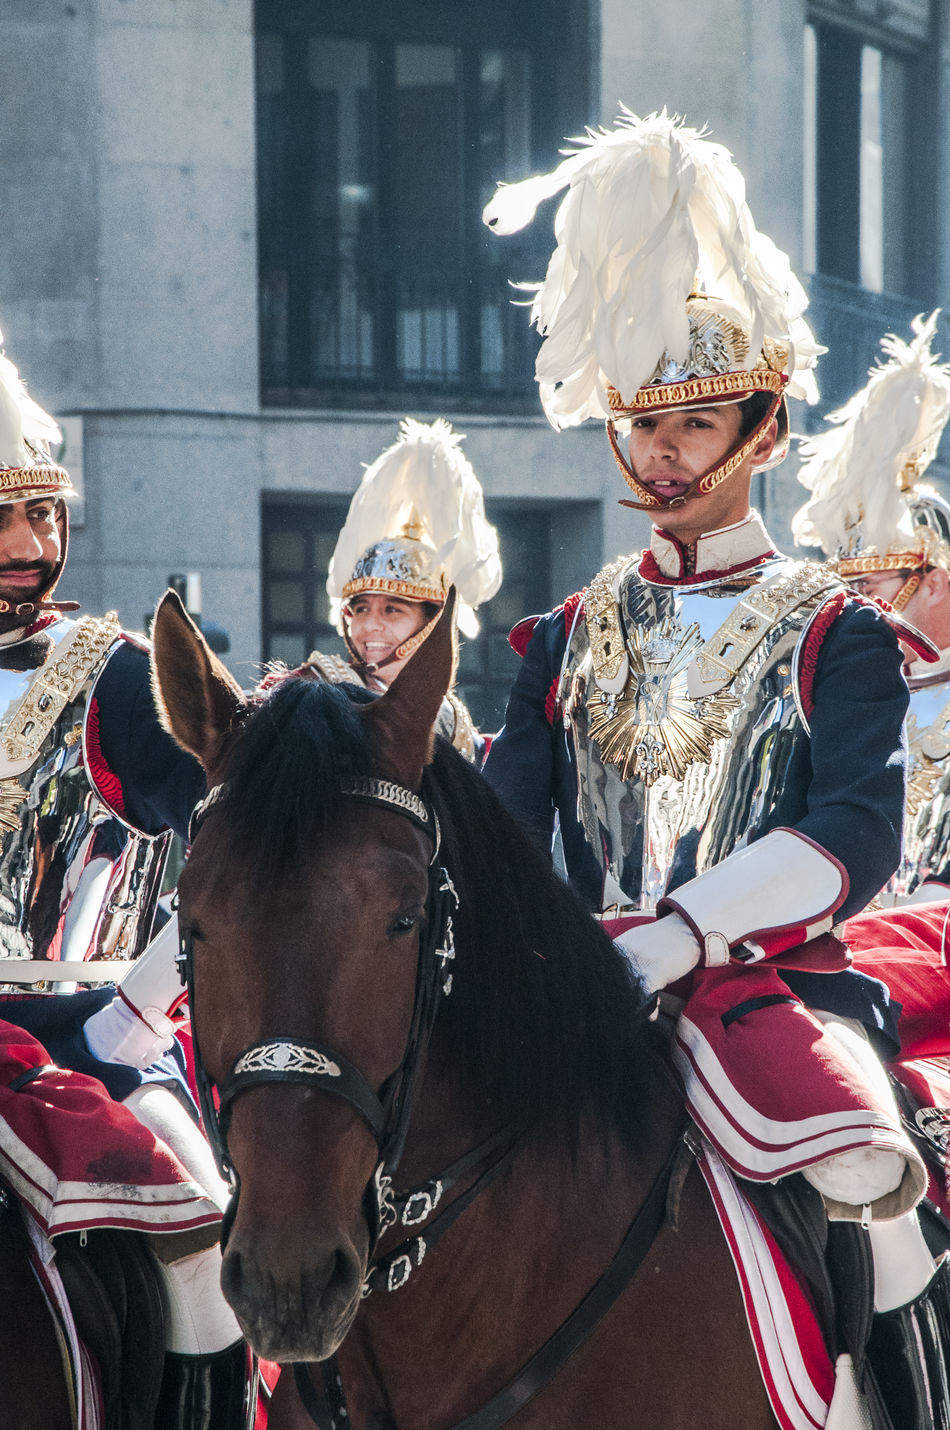 Half view of a mounted cavalery soldier in full ceremonial uniform. Adult Animal Themes Cavalry Cavalry Soldier Ceremonial Costumes Day Editorial  Horse Horses Mammal Military Outdoors People Period Costume Real People Travel Uniform